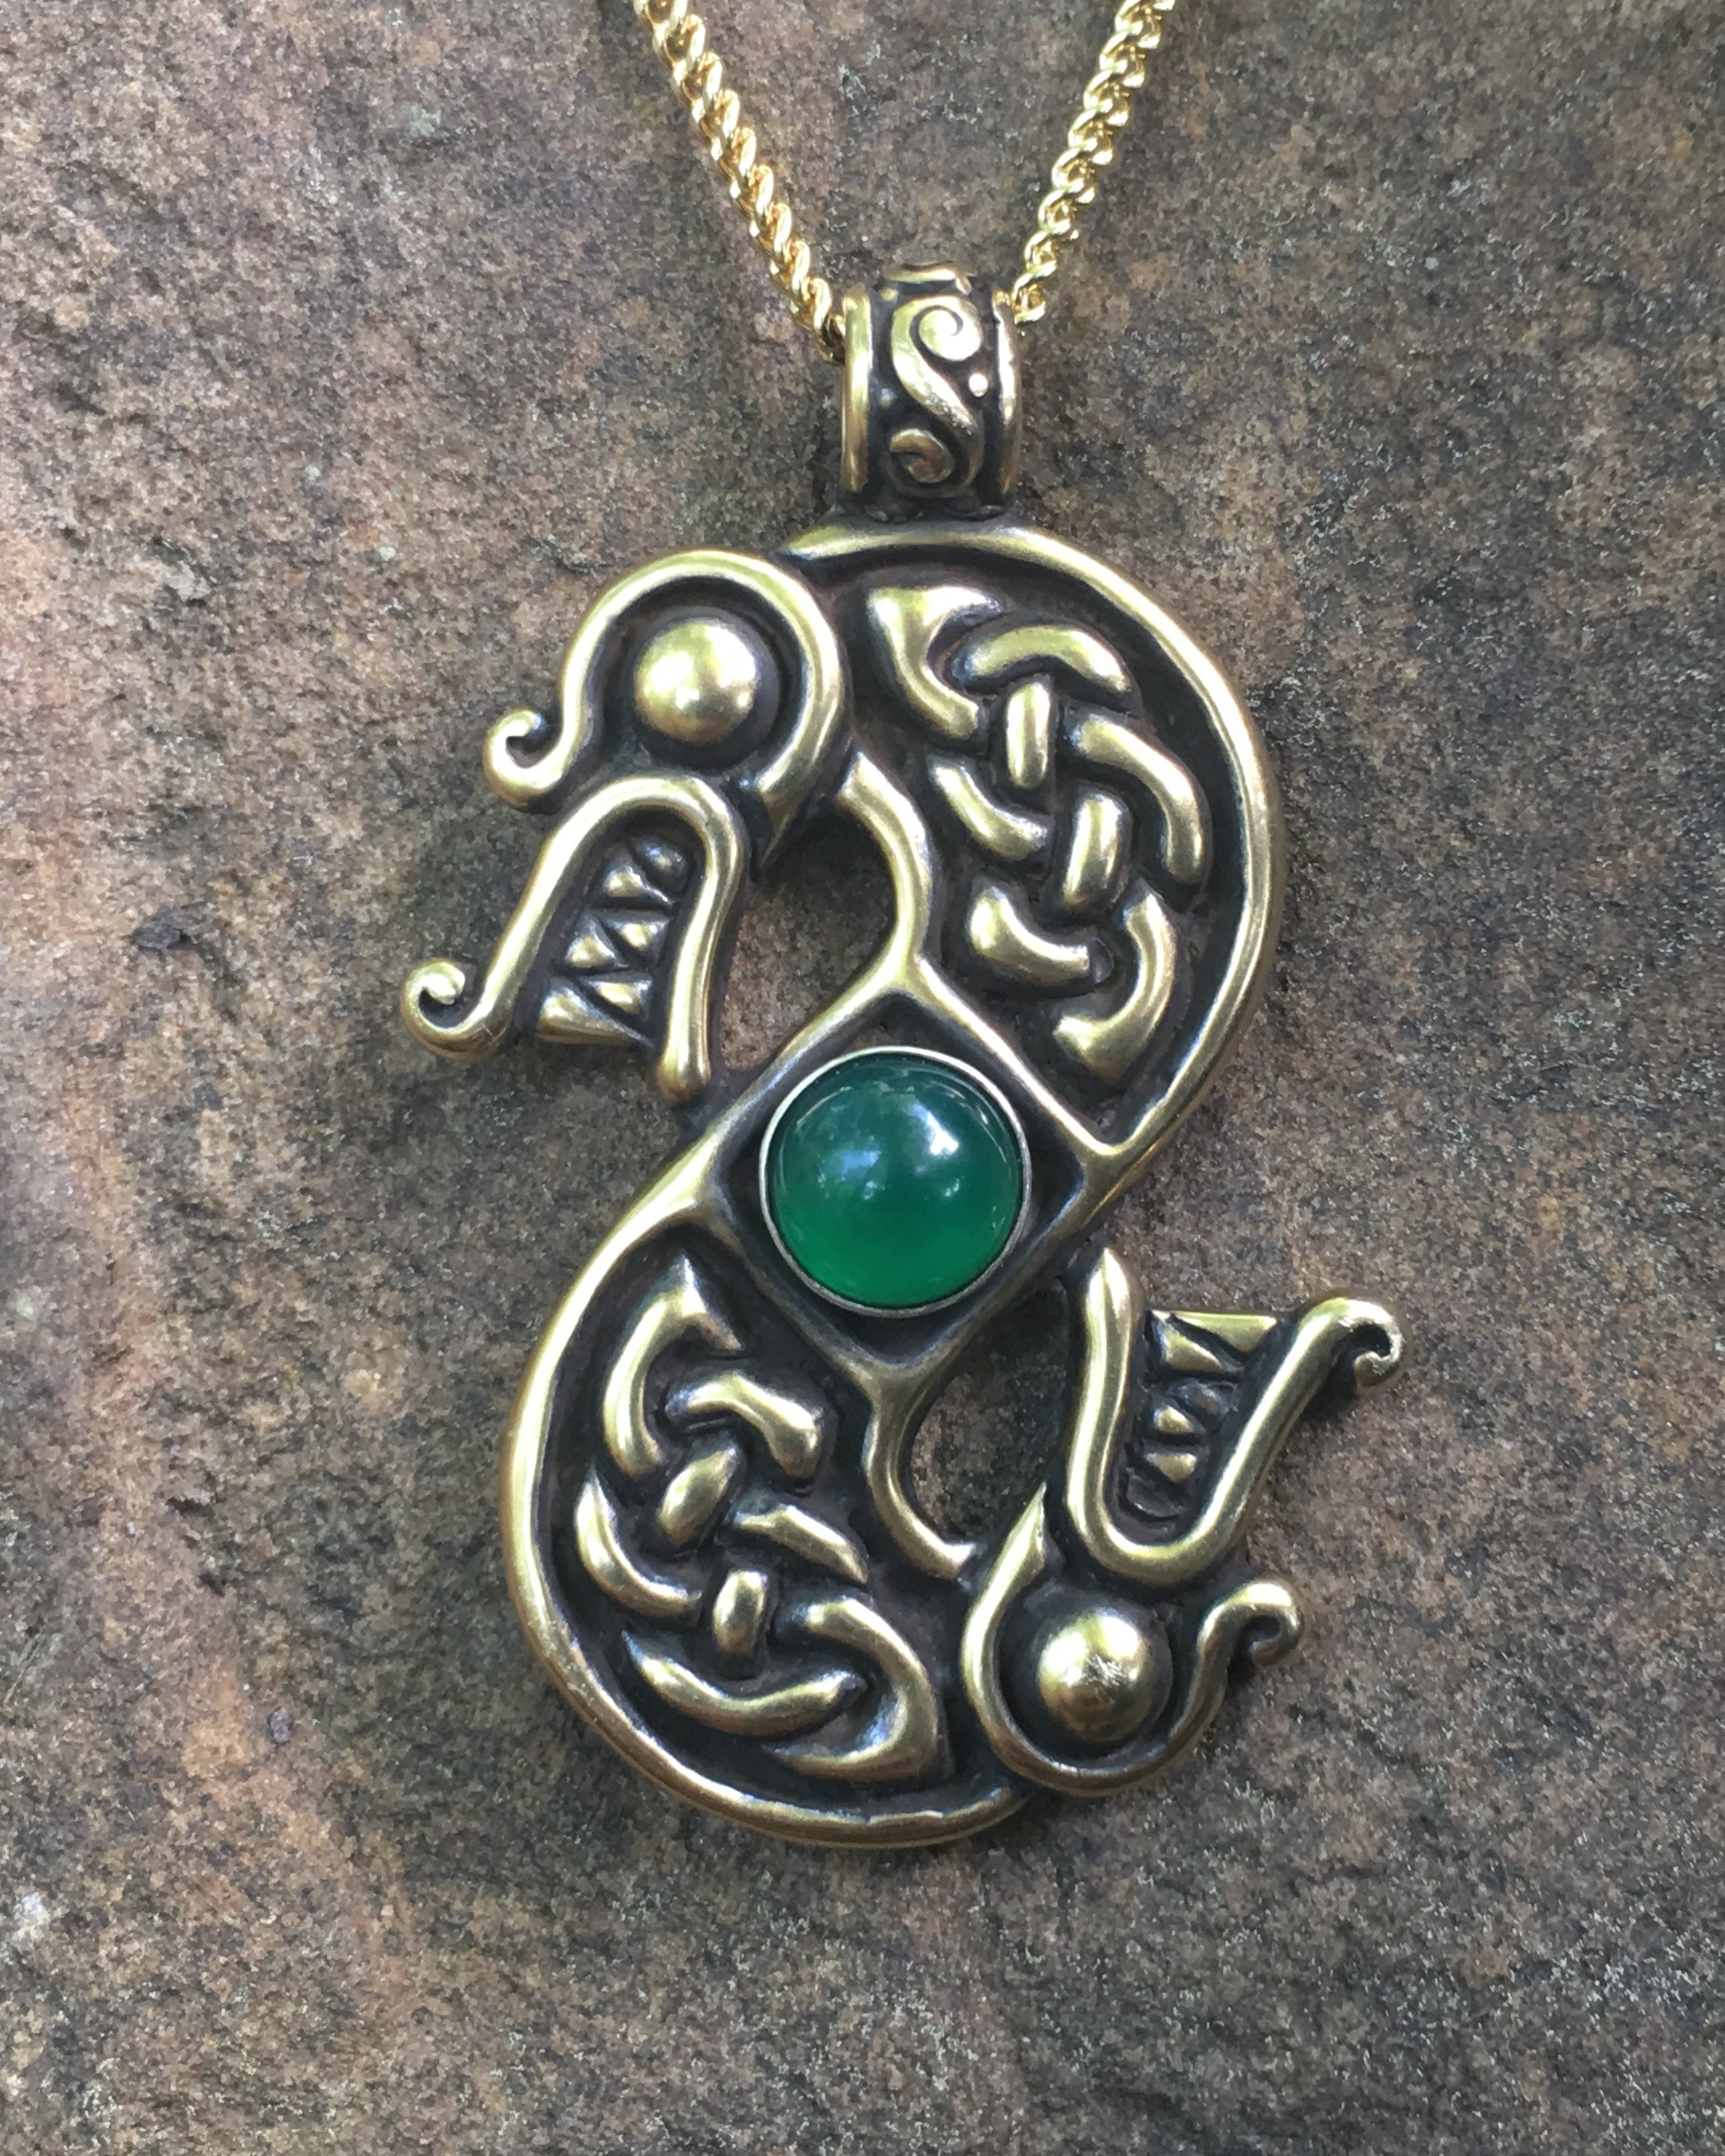 Double headed dragon pendant necklace crafty celts double headed dragon pendant necklace aloadofball Gallery